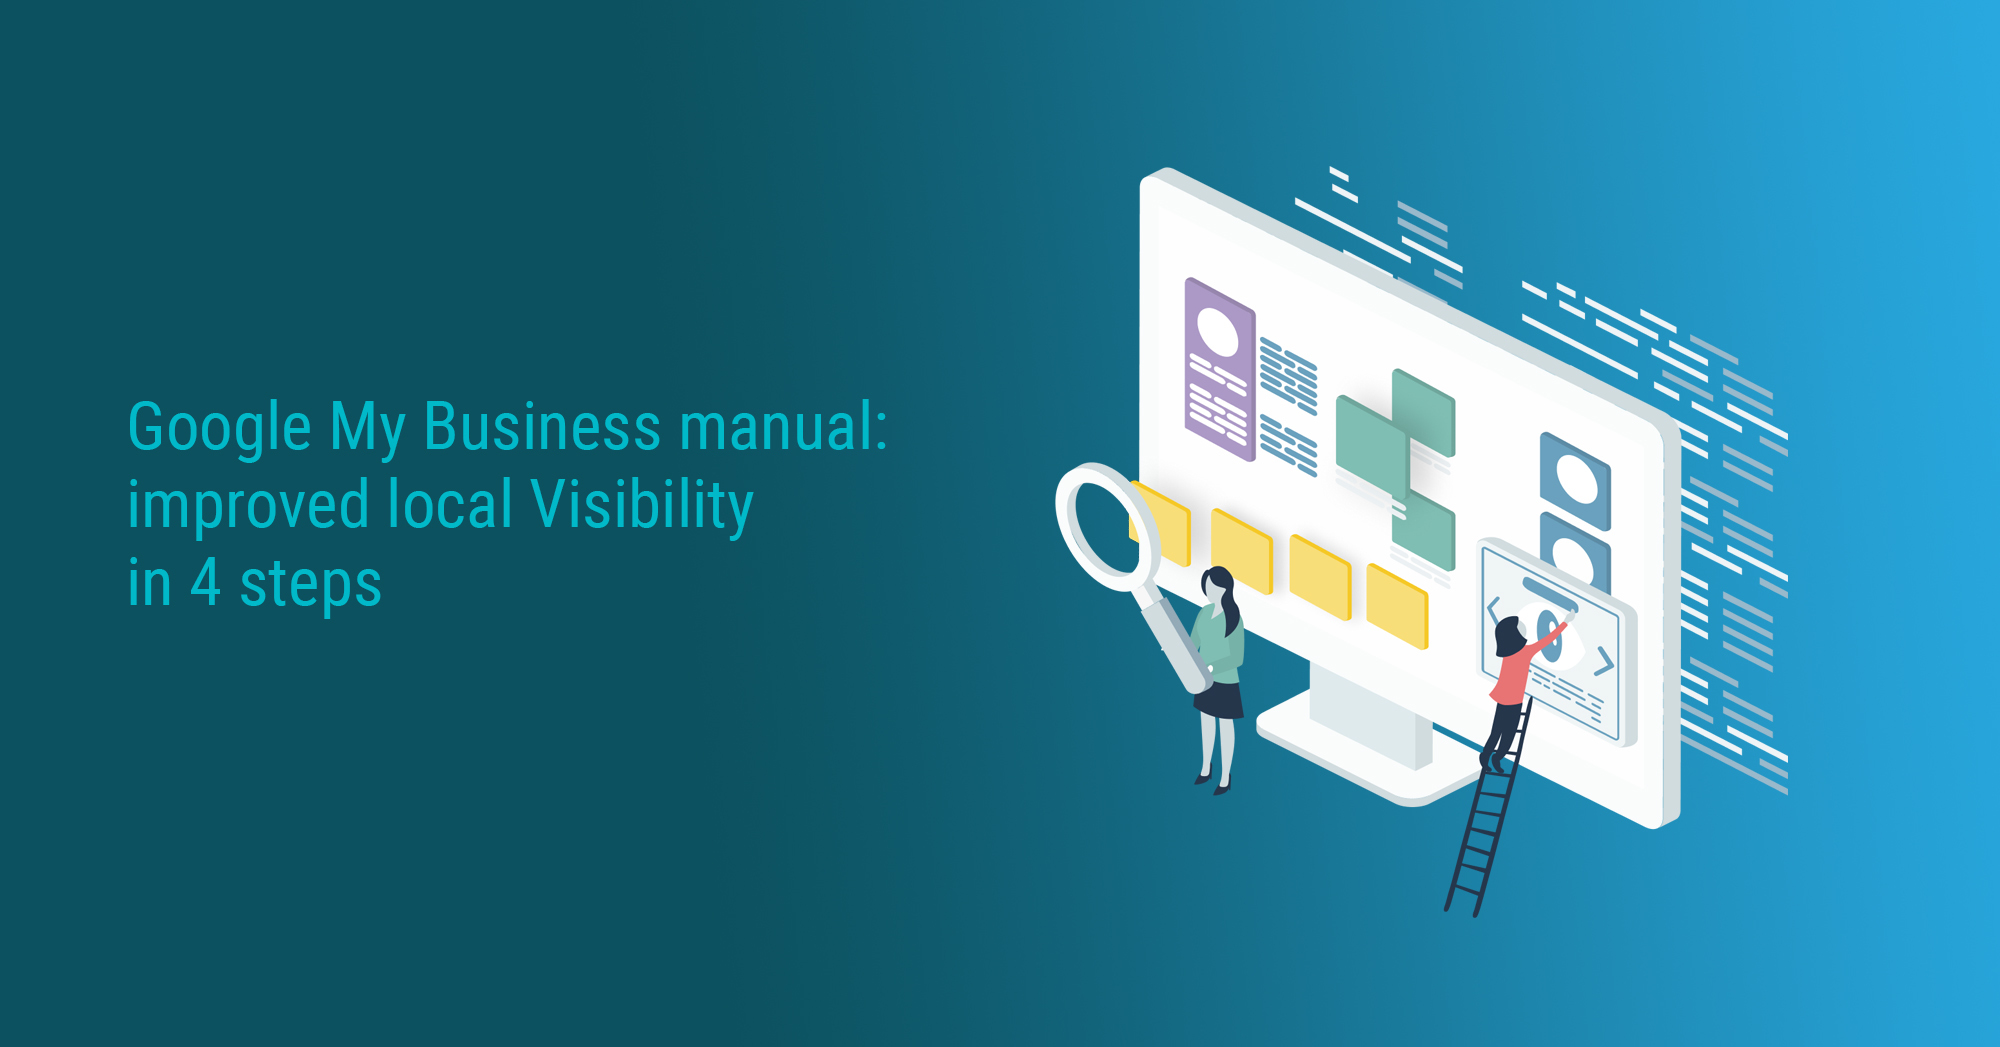 Google My Business manual: improved local Visibility in 4 steps